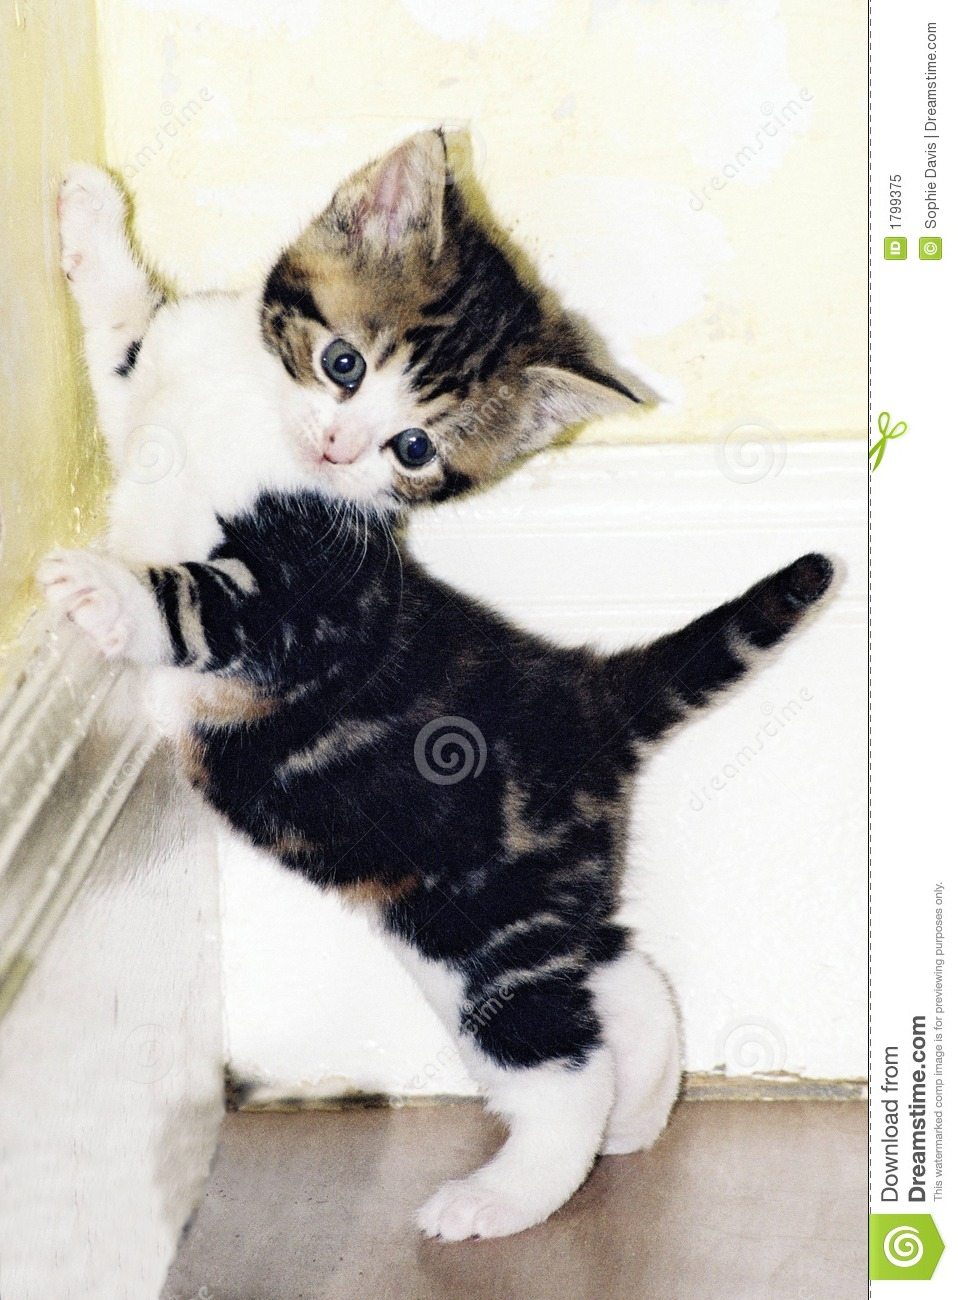 cute kitten playing royalty free stock photo image 1799375 Animated Kitten Clip Art Kitten Art